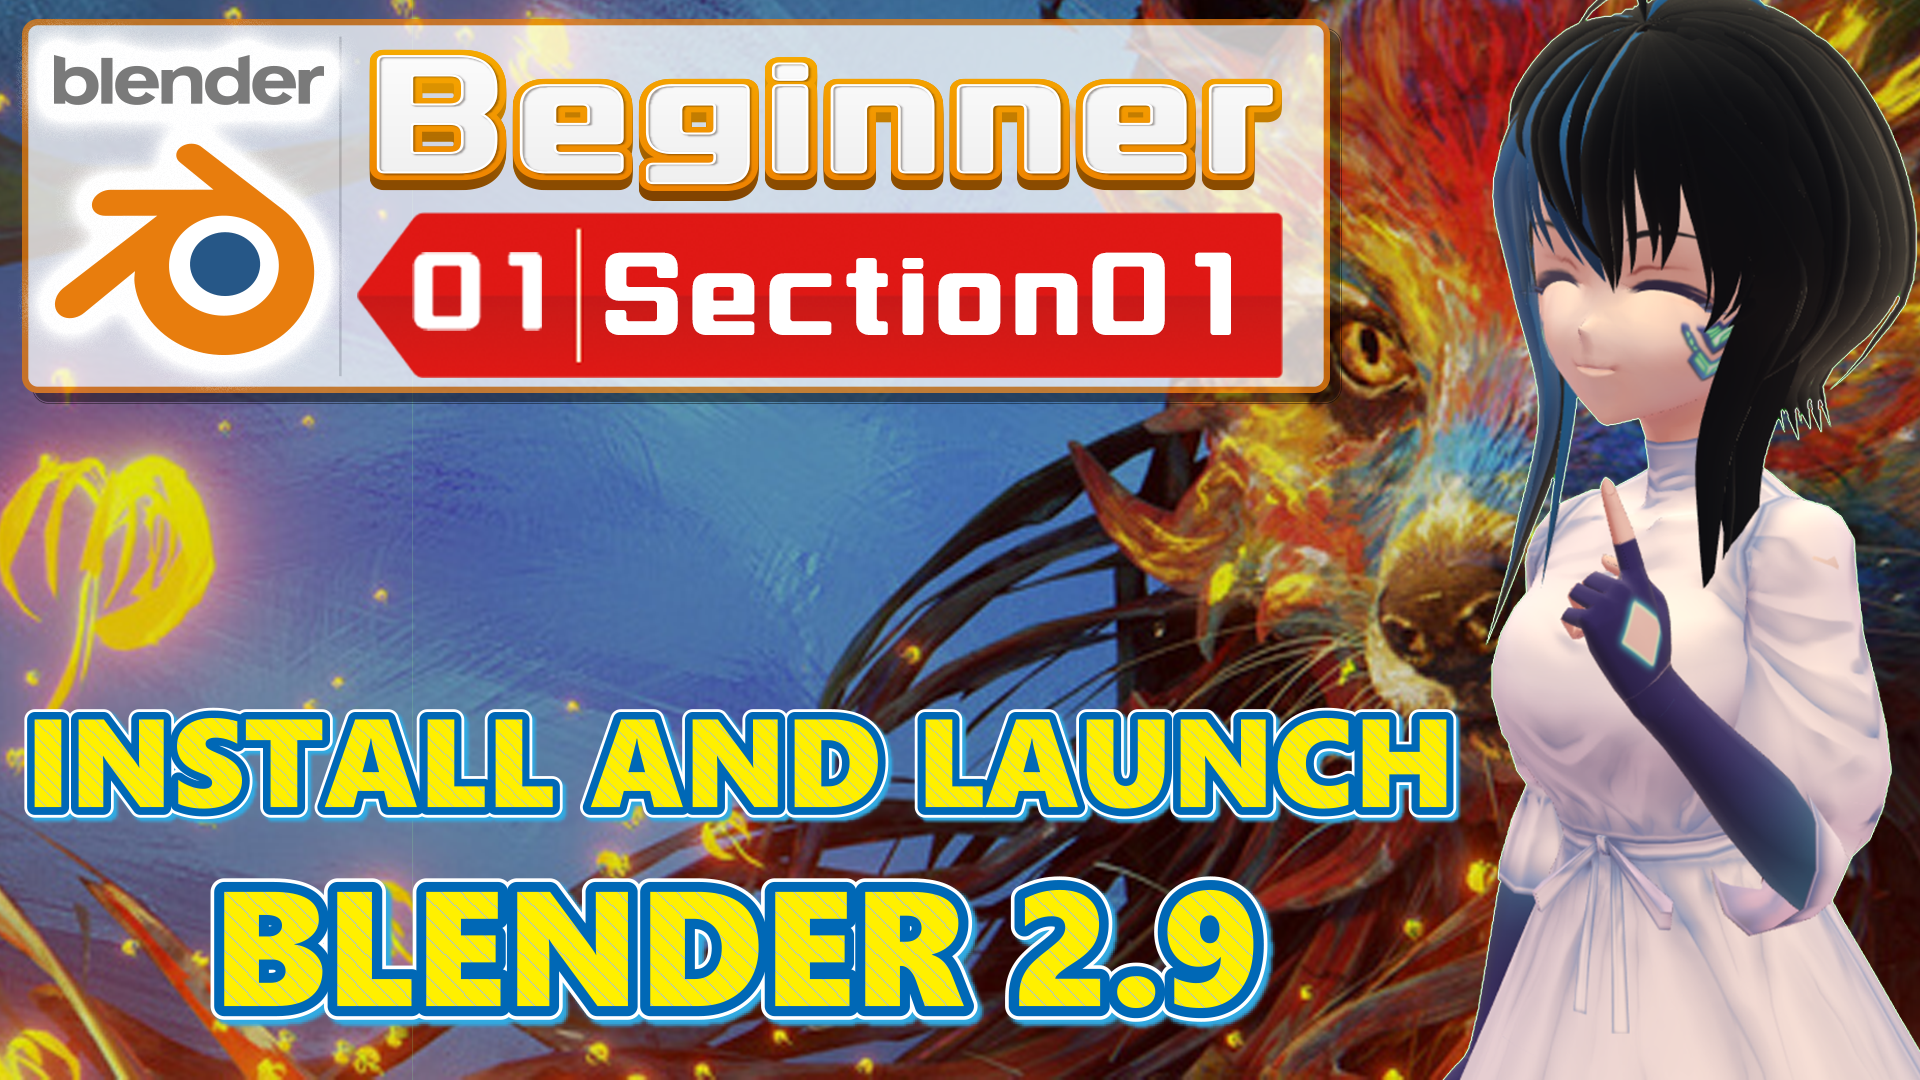 INSTALL AND LAUNCH BLENDER 2.9